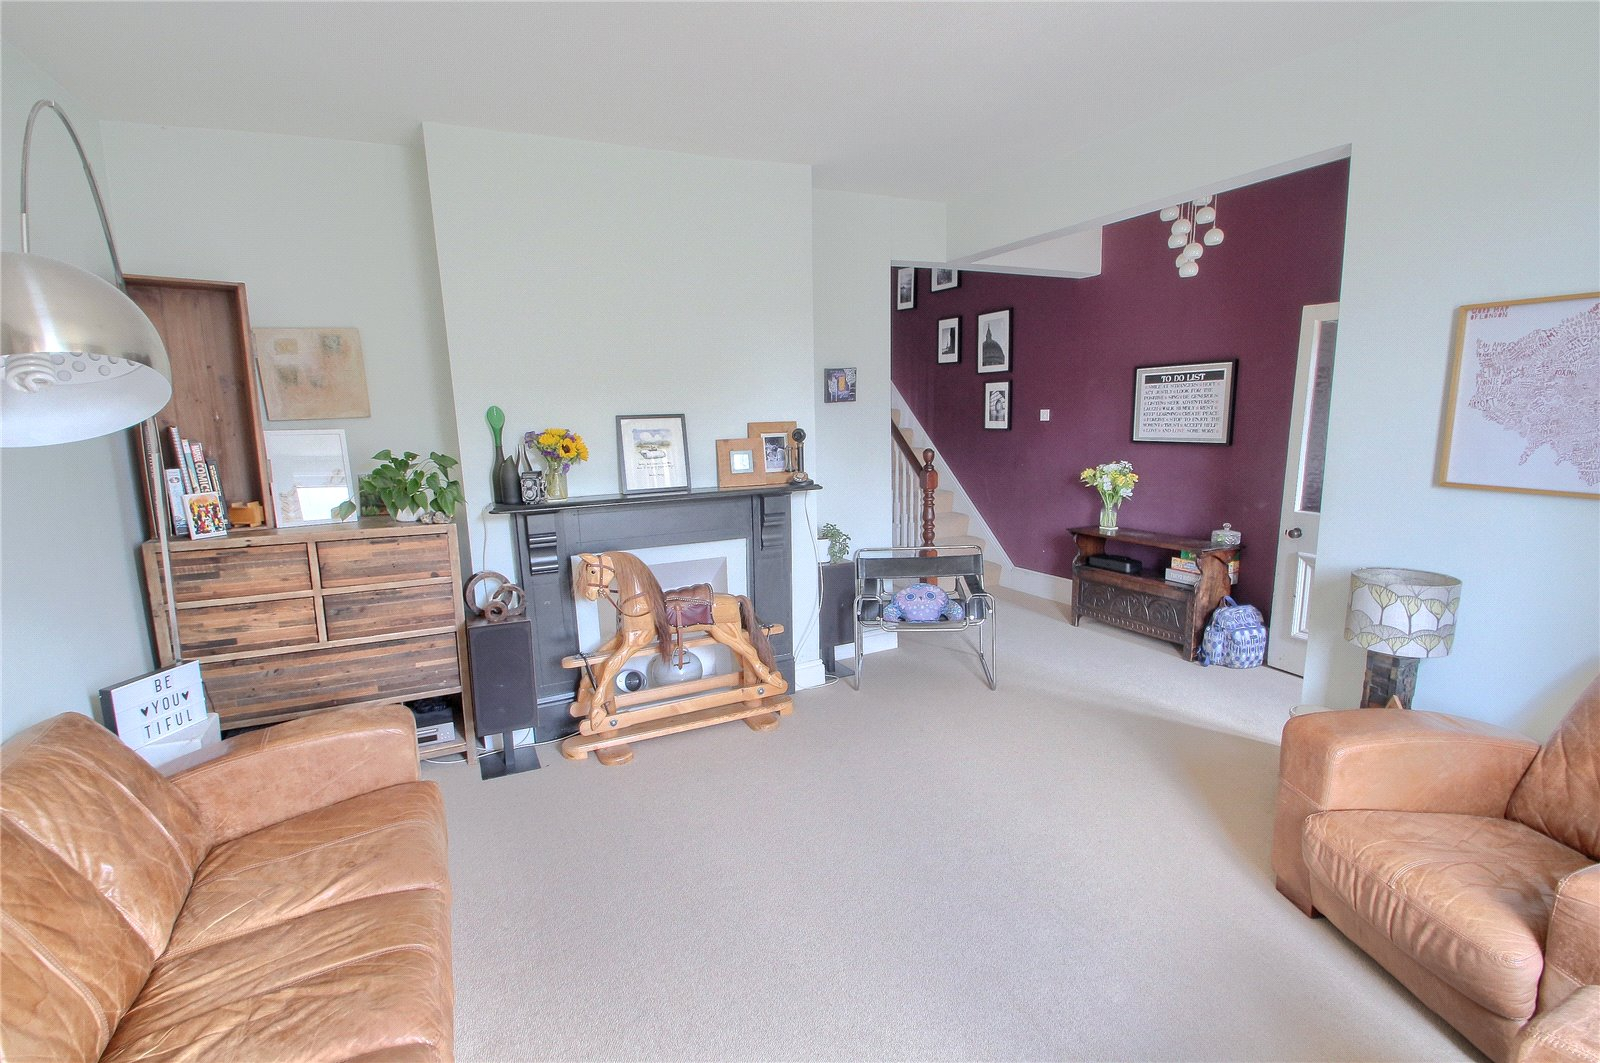 5 bed house for sale in Varo Terrace, Stockton-on-Tees 1